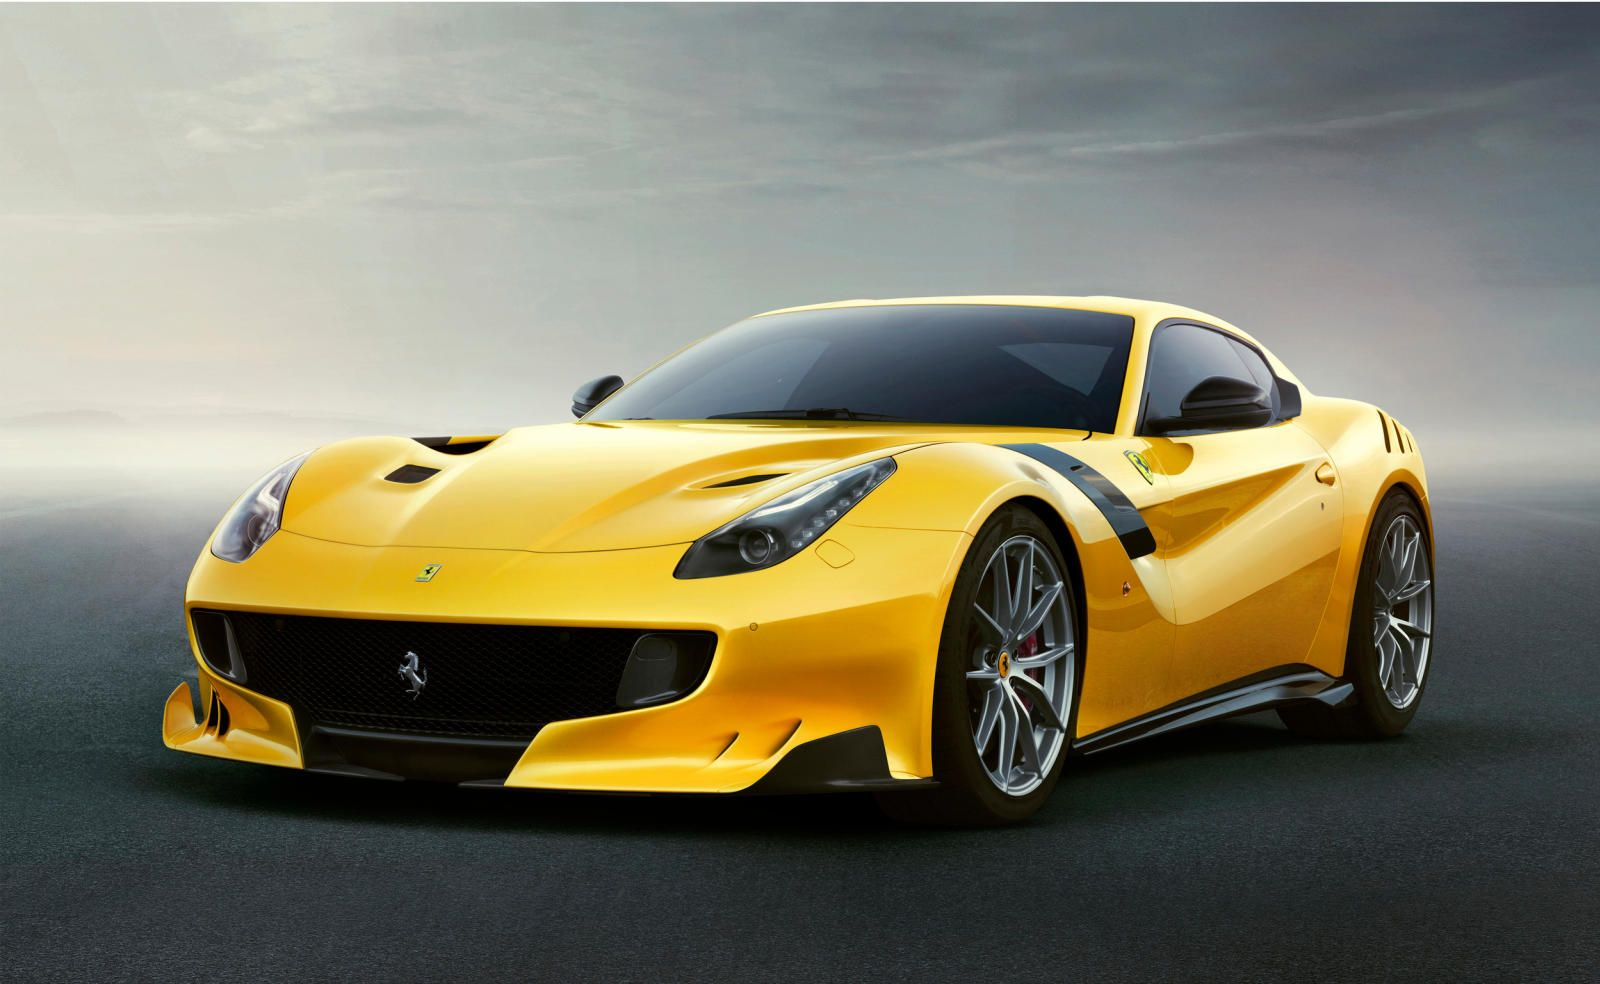 Ferrari pays tribute to the Tour de France with the 769-hp F12tdf. An horsepower-filled homage to the legendary endurance race.